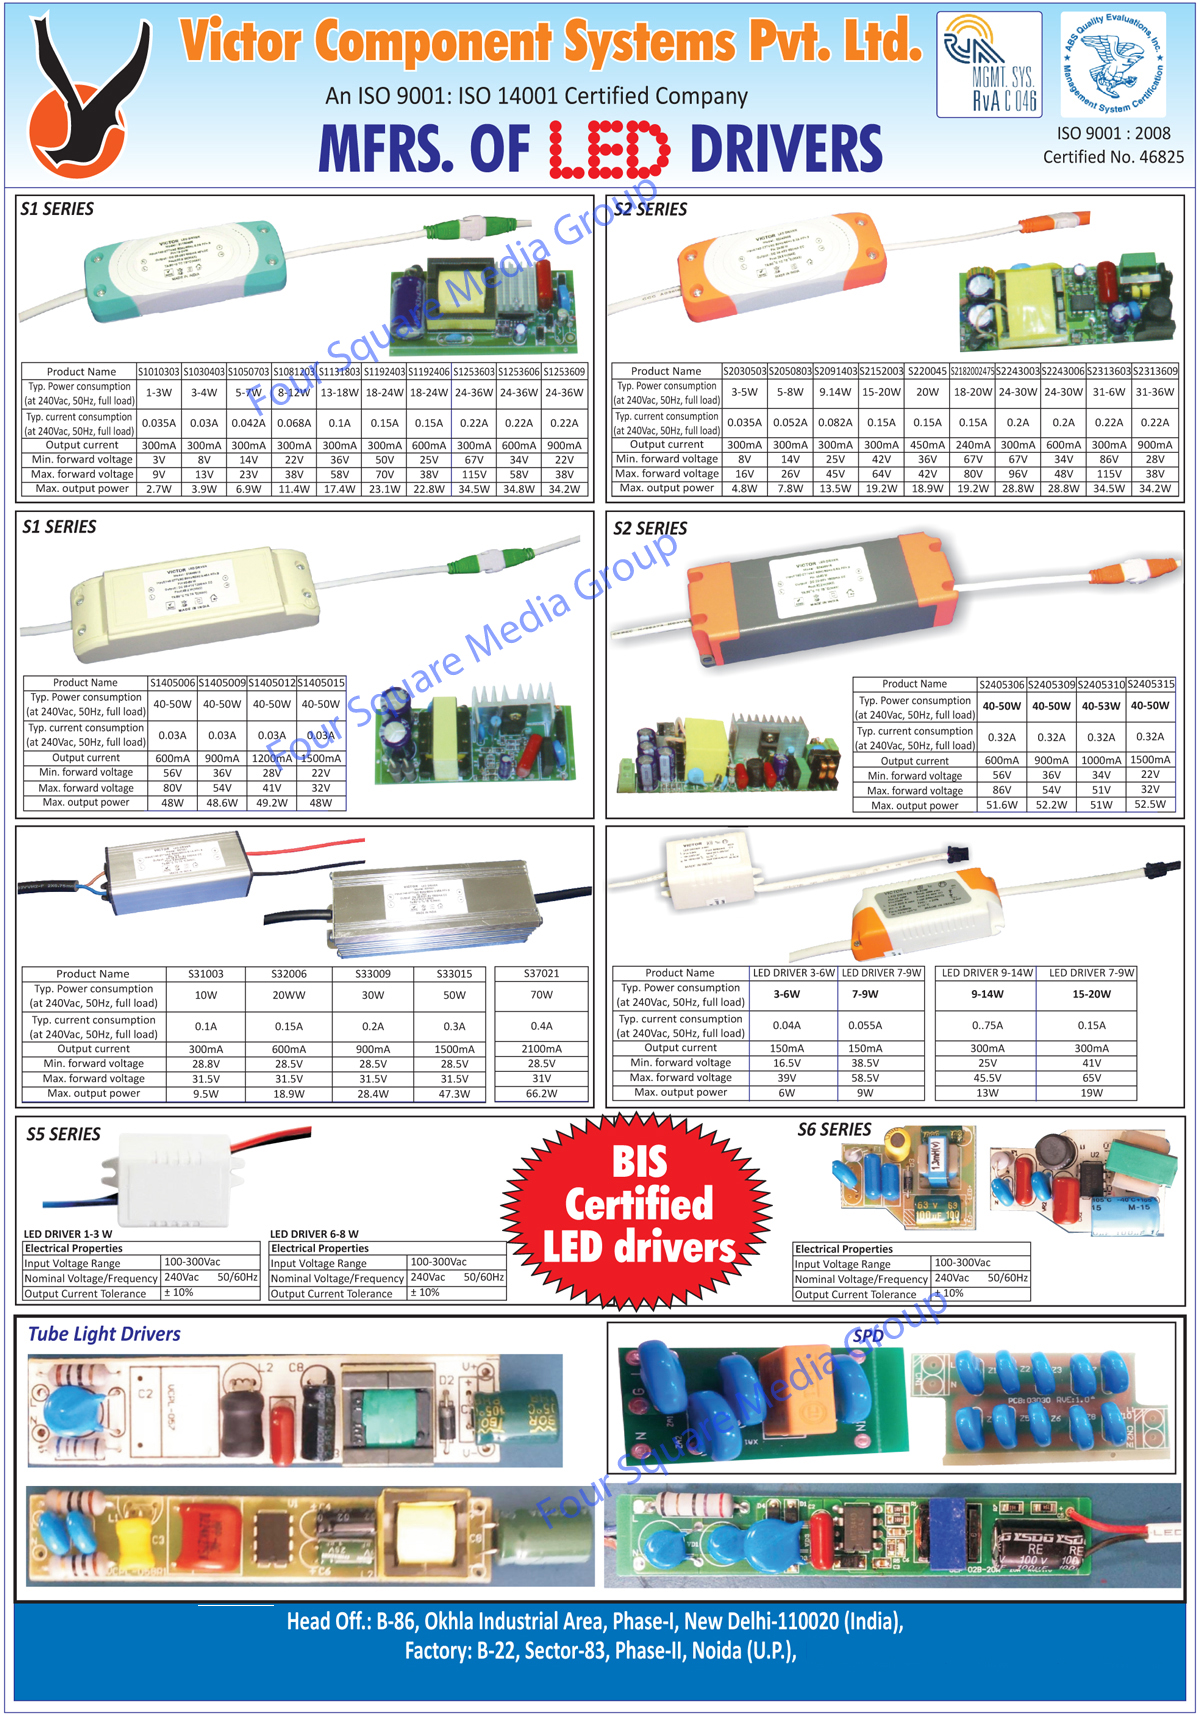 Led Drivers, Tube Light Drivers, Led Light Drivers, SPD Drivers